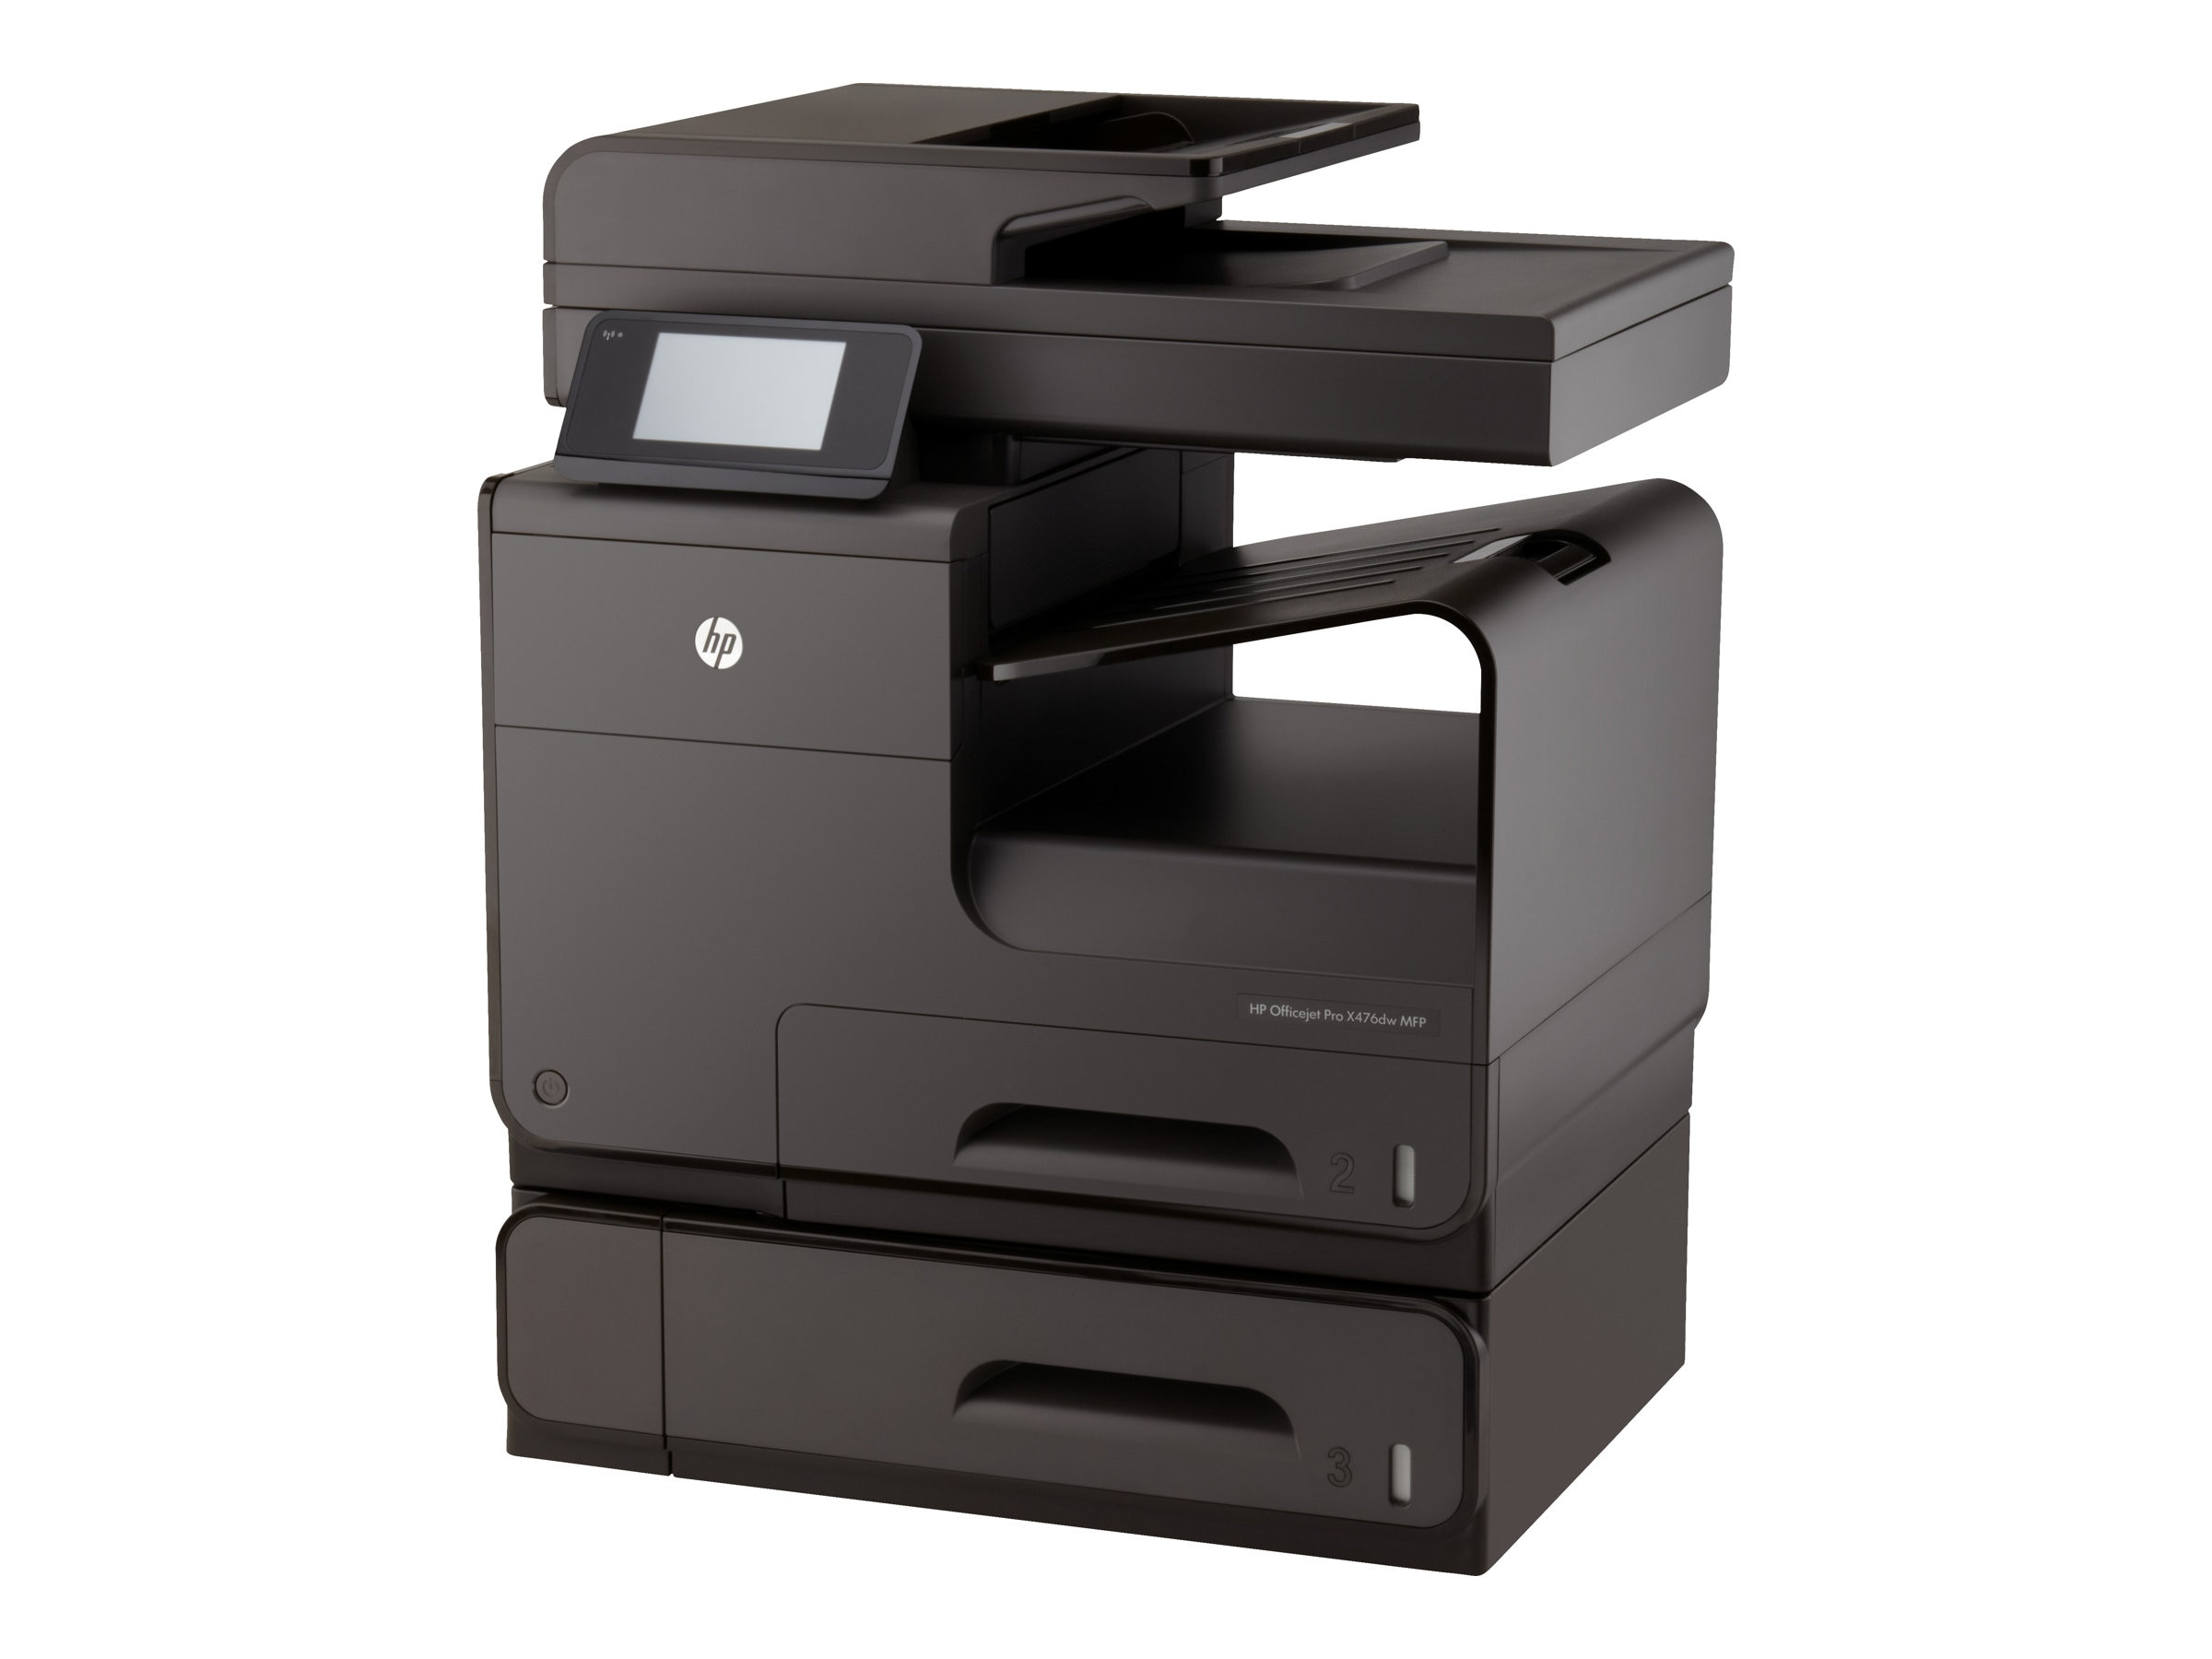 HP Officejet Pro X Series X 476dw Color MFP